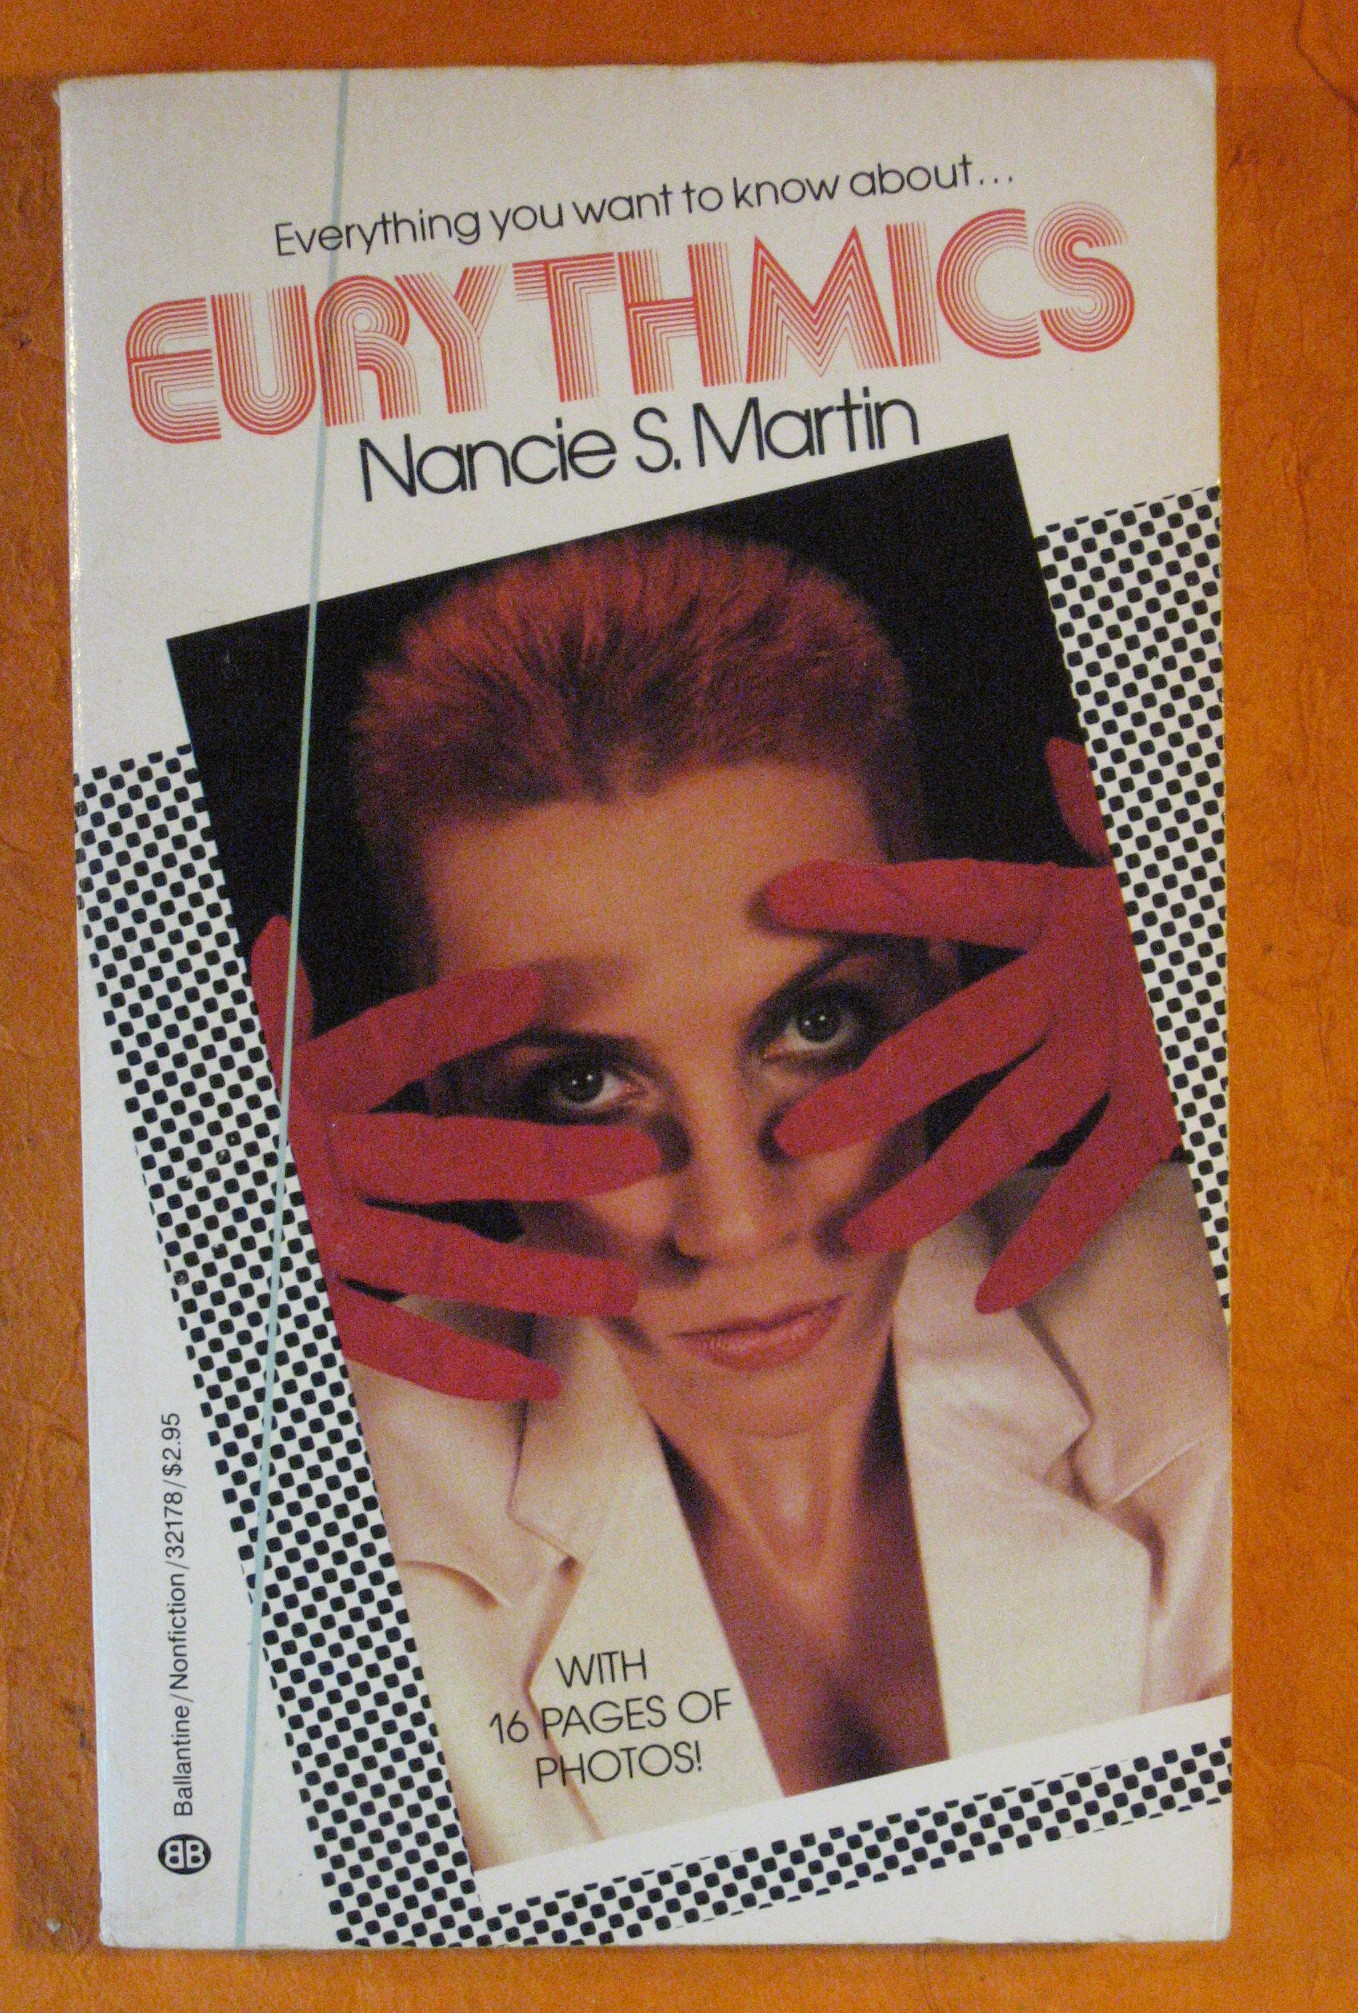 Eurythmics, Martin, Nancy S.